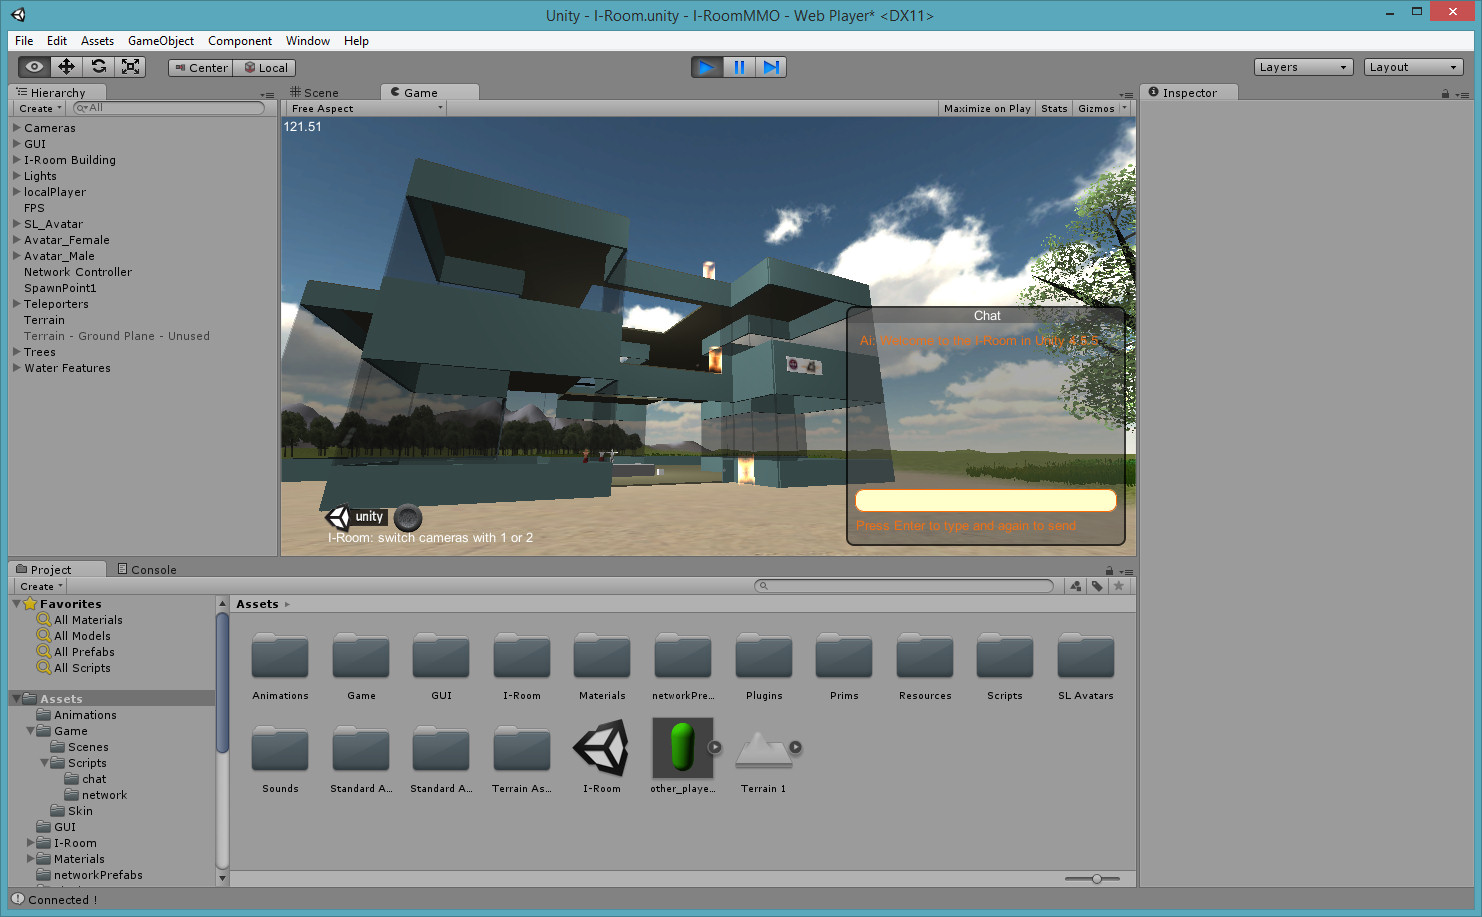 Unity Project Openvce And I Room Austin Tate S Blog